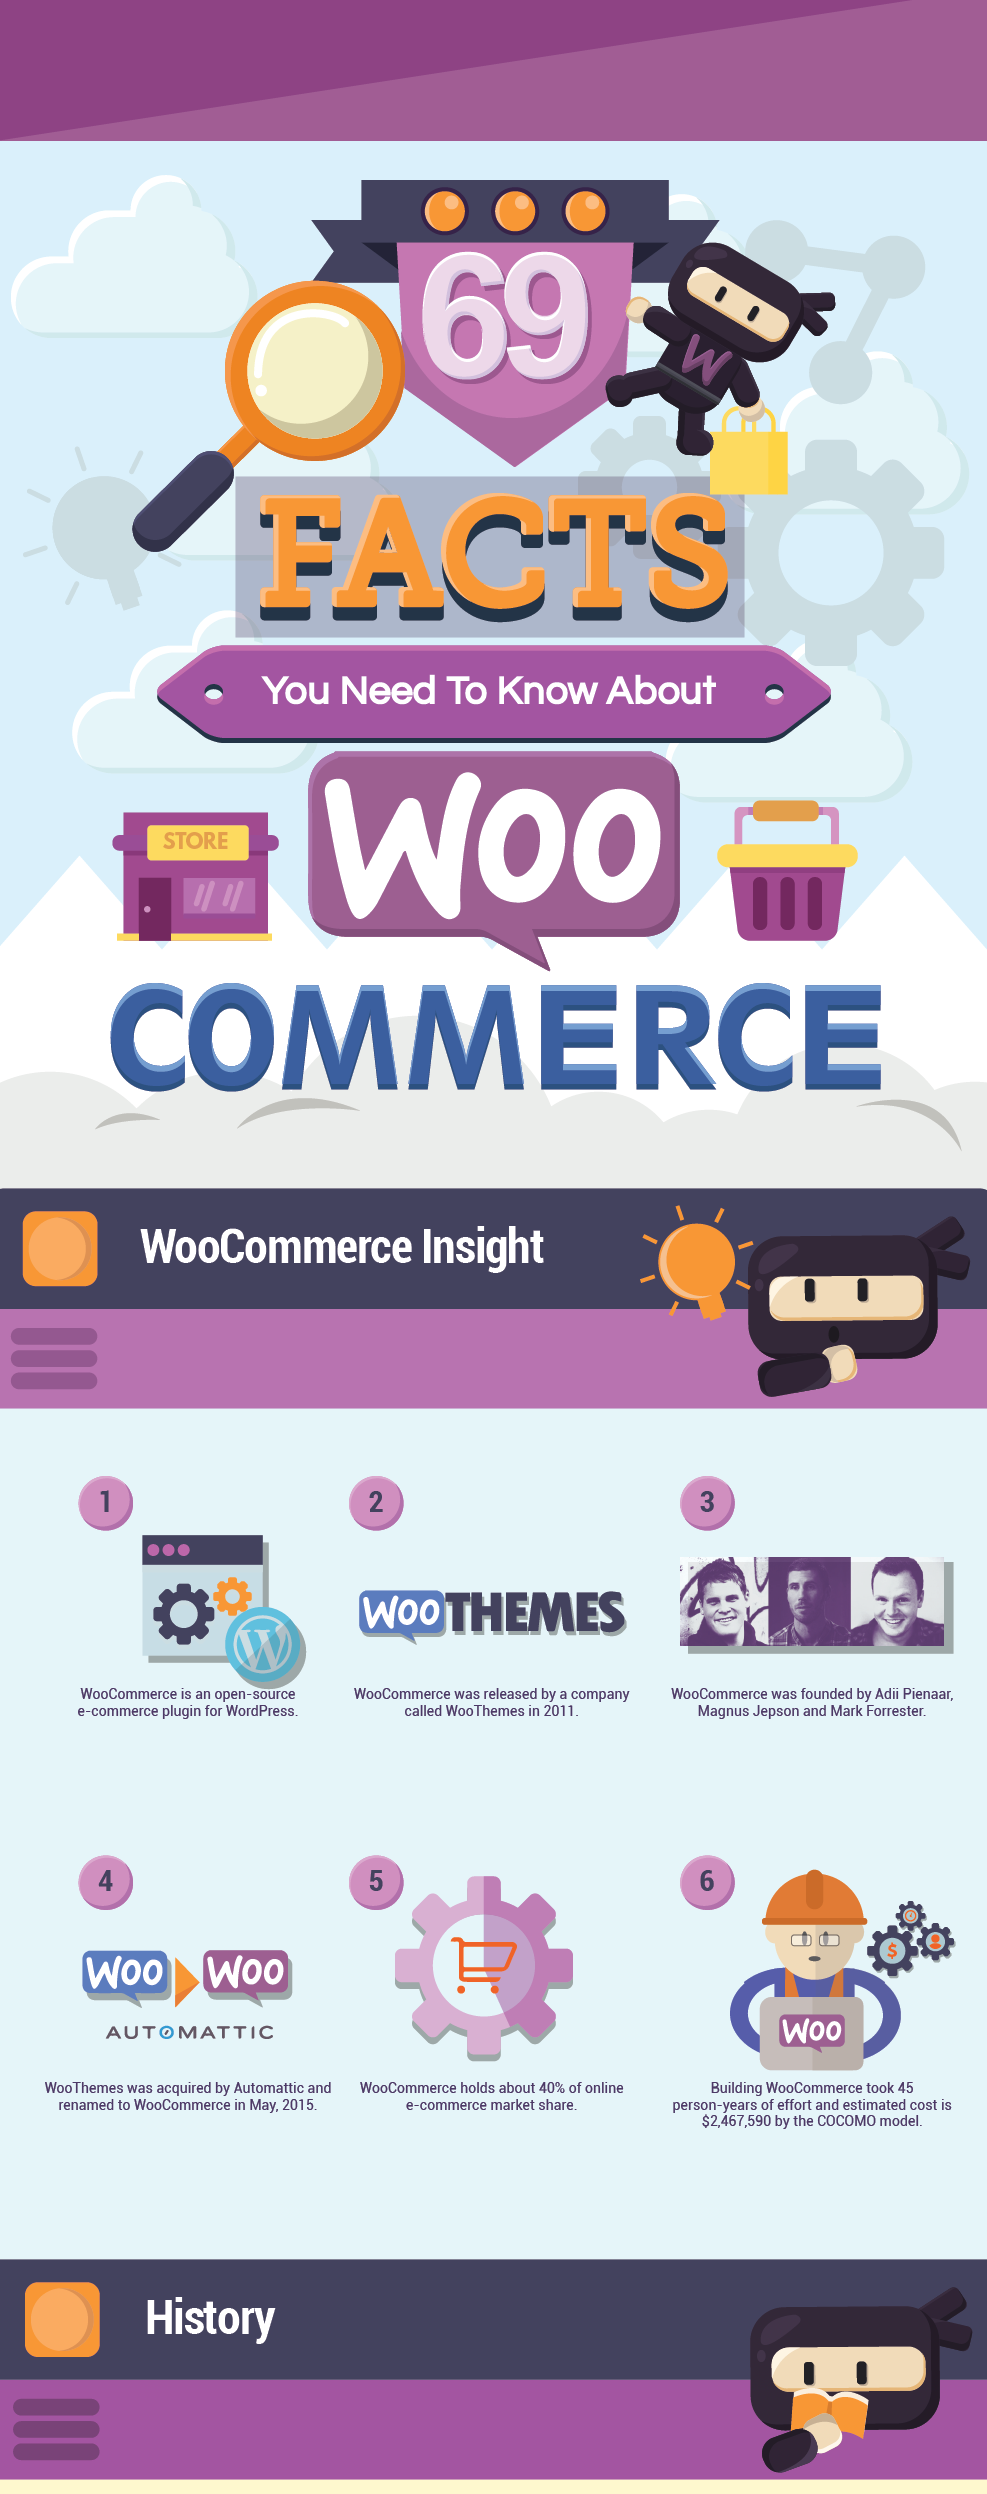 This infographic covers the most interesting facts and stats associated with the most popular open-source eCommerce plugin, powering no less than 40% of all the online stores in the world. From usage stats to tips and hacks - find out all there is to know about WooCommerce.